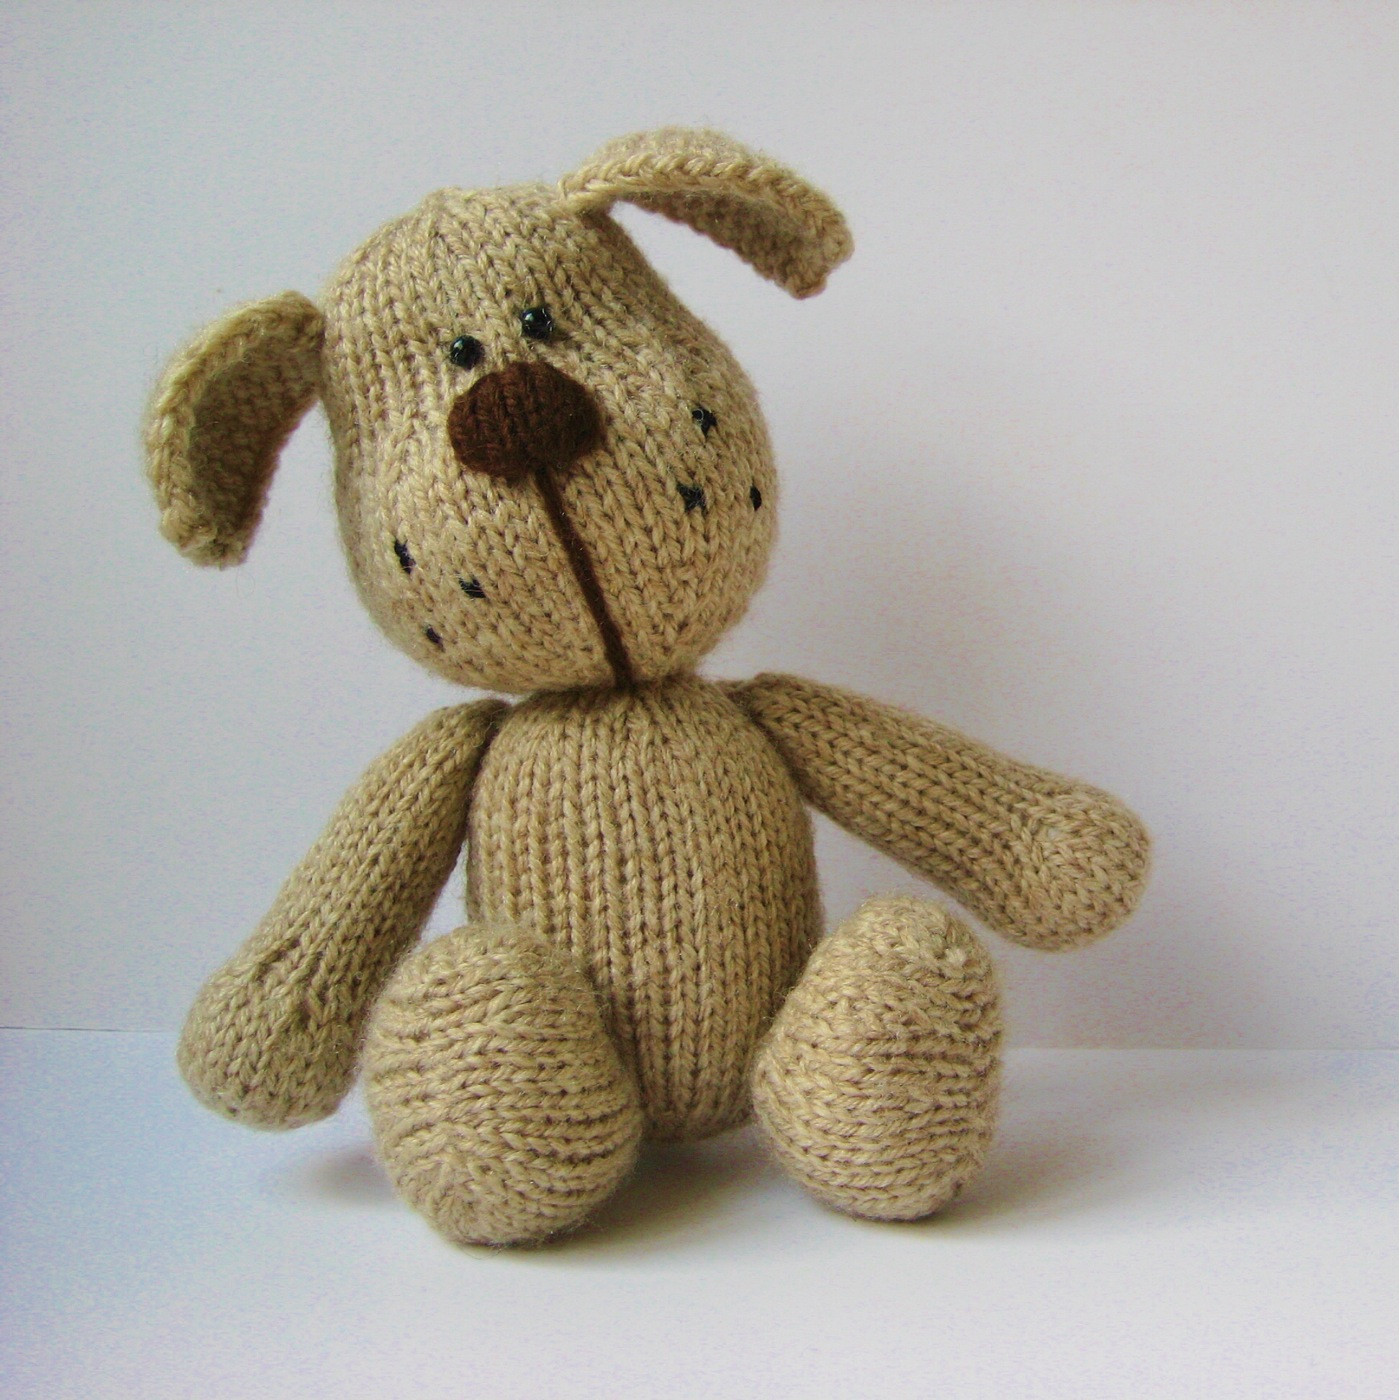 Fresh Knitted Dog toys Free Patterns Crochet and Knit Dog Knitting Patterns Free Of Superb 44 Pictures Dog Knitting Patterns Free